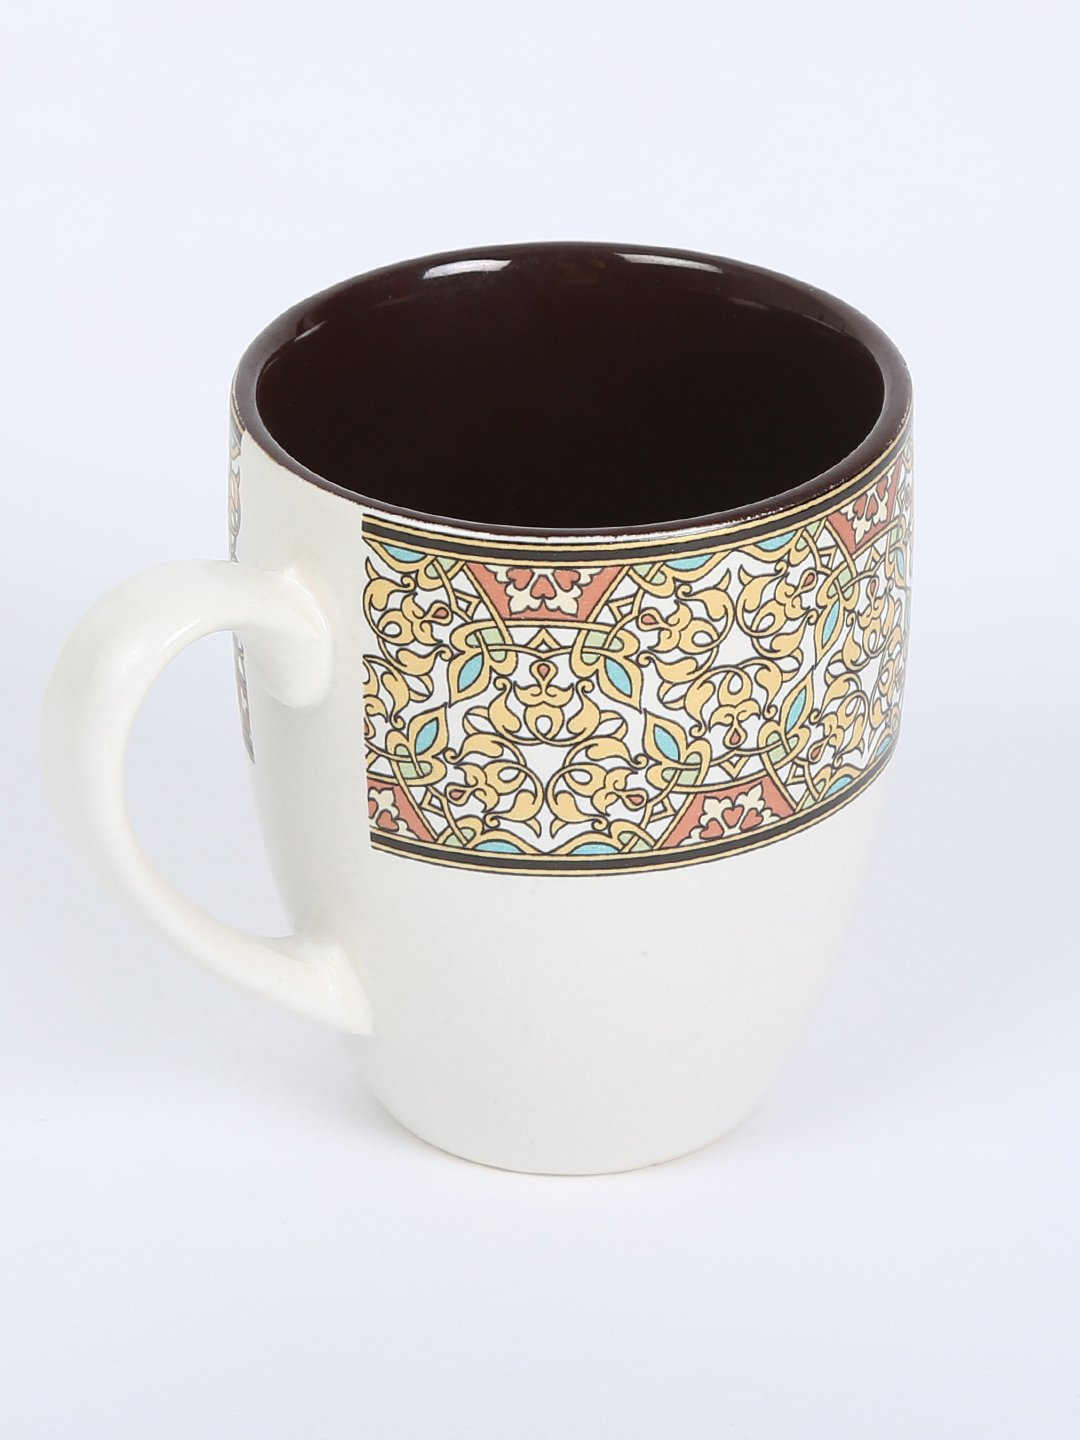 RANGRAGE Handcrafted Persian Garden Tea/Coffee Mugs (Set of 6)